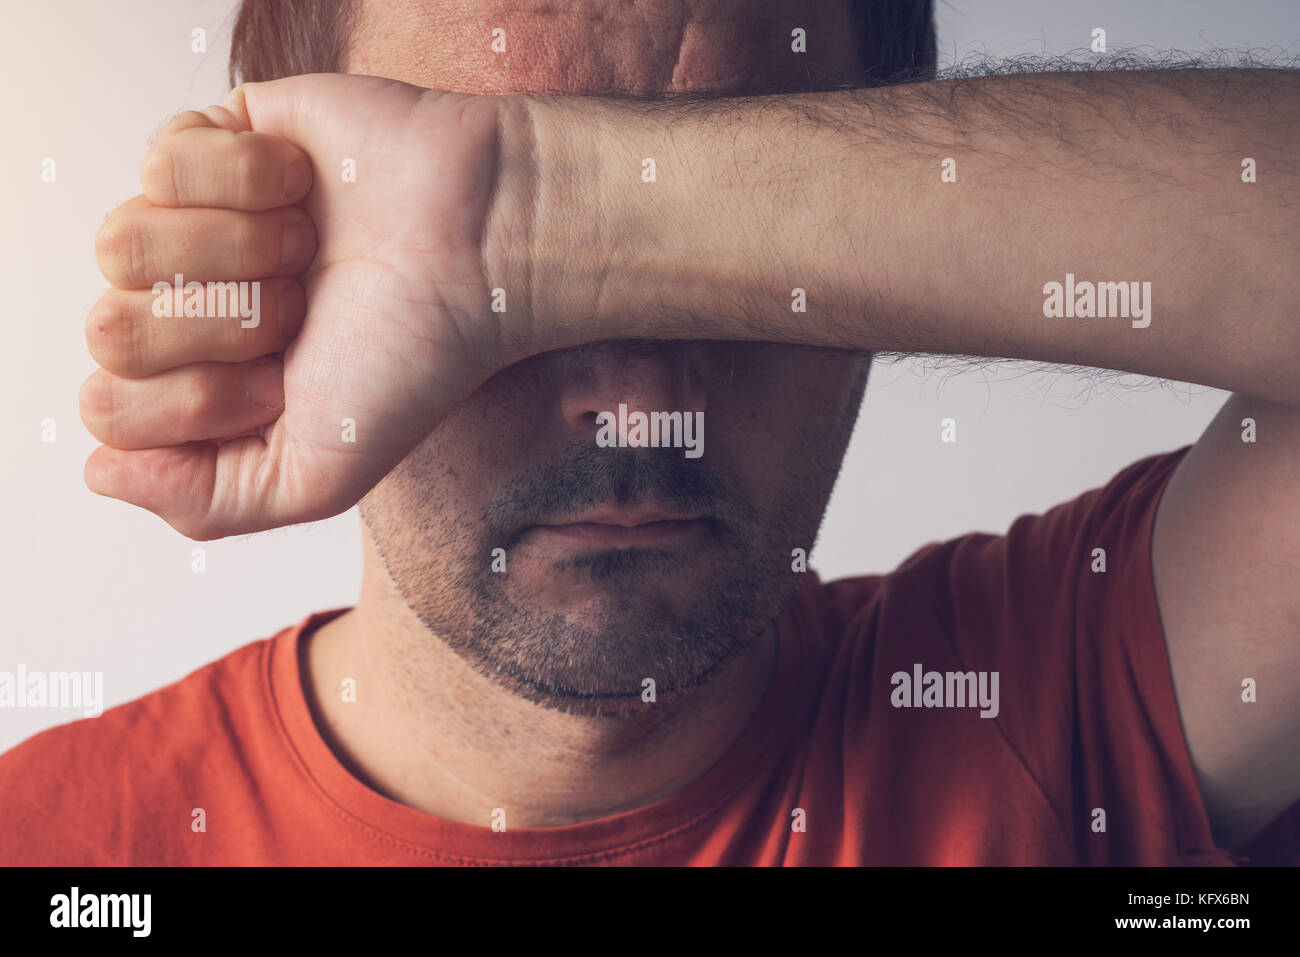 Shame and guilt, man covering face. Ashamed disgraced and embarrassed person. - Stock Image